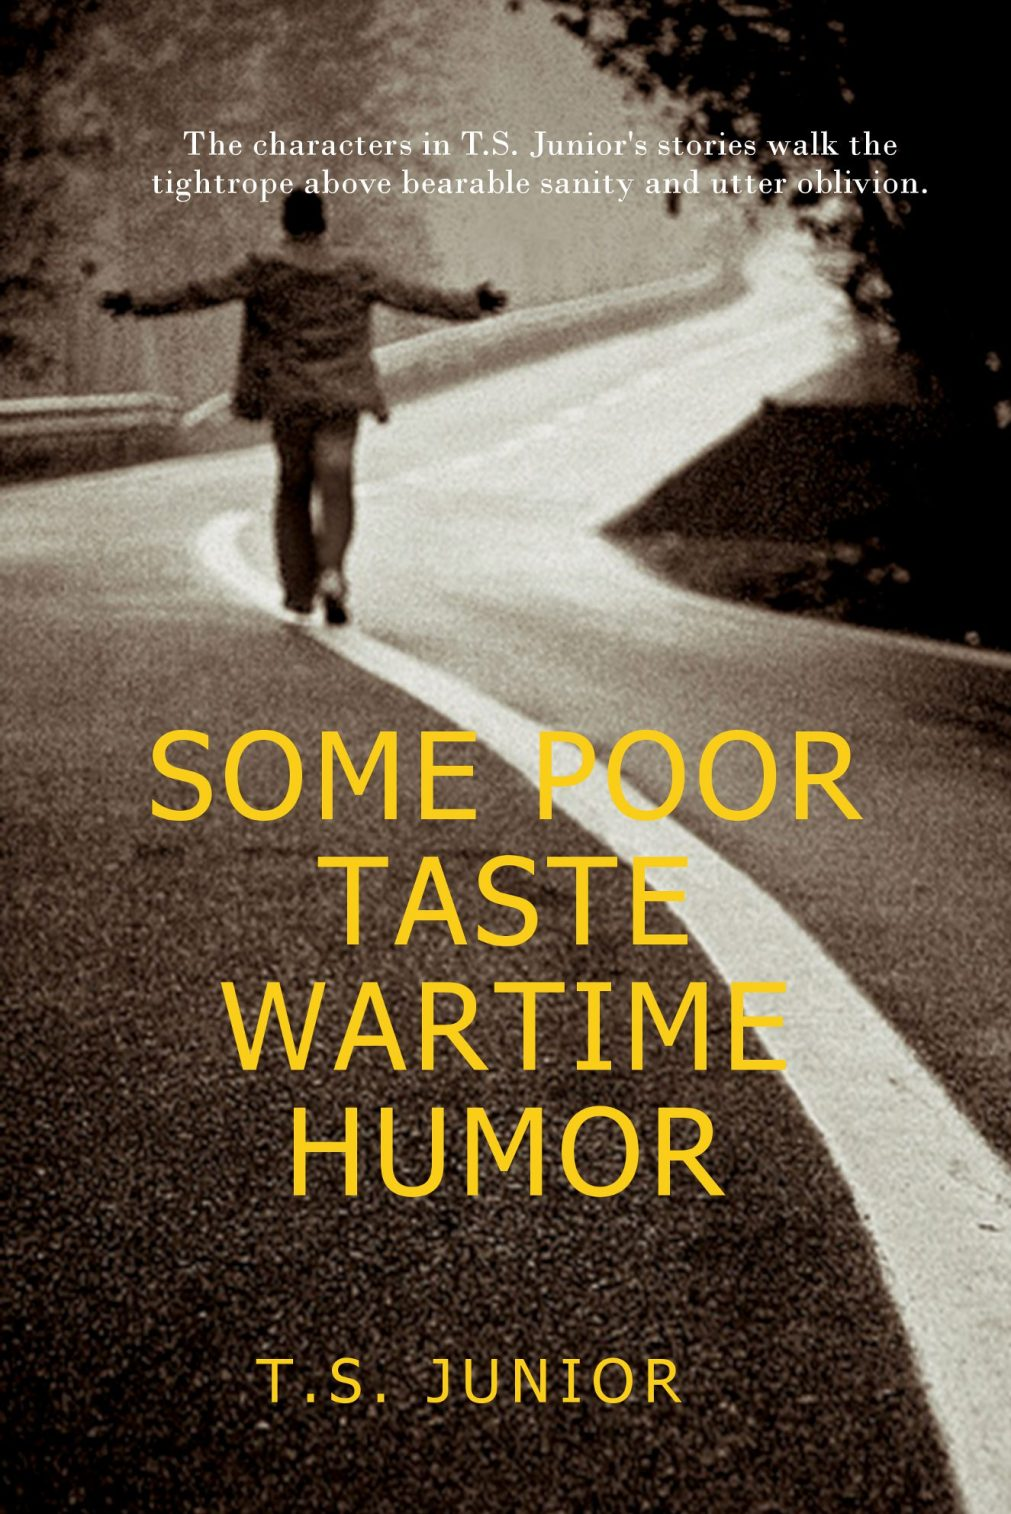 """T.S. Junior's short story collection """"Some Poor Taste Wartime Humor"""" is nowavailable!"""